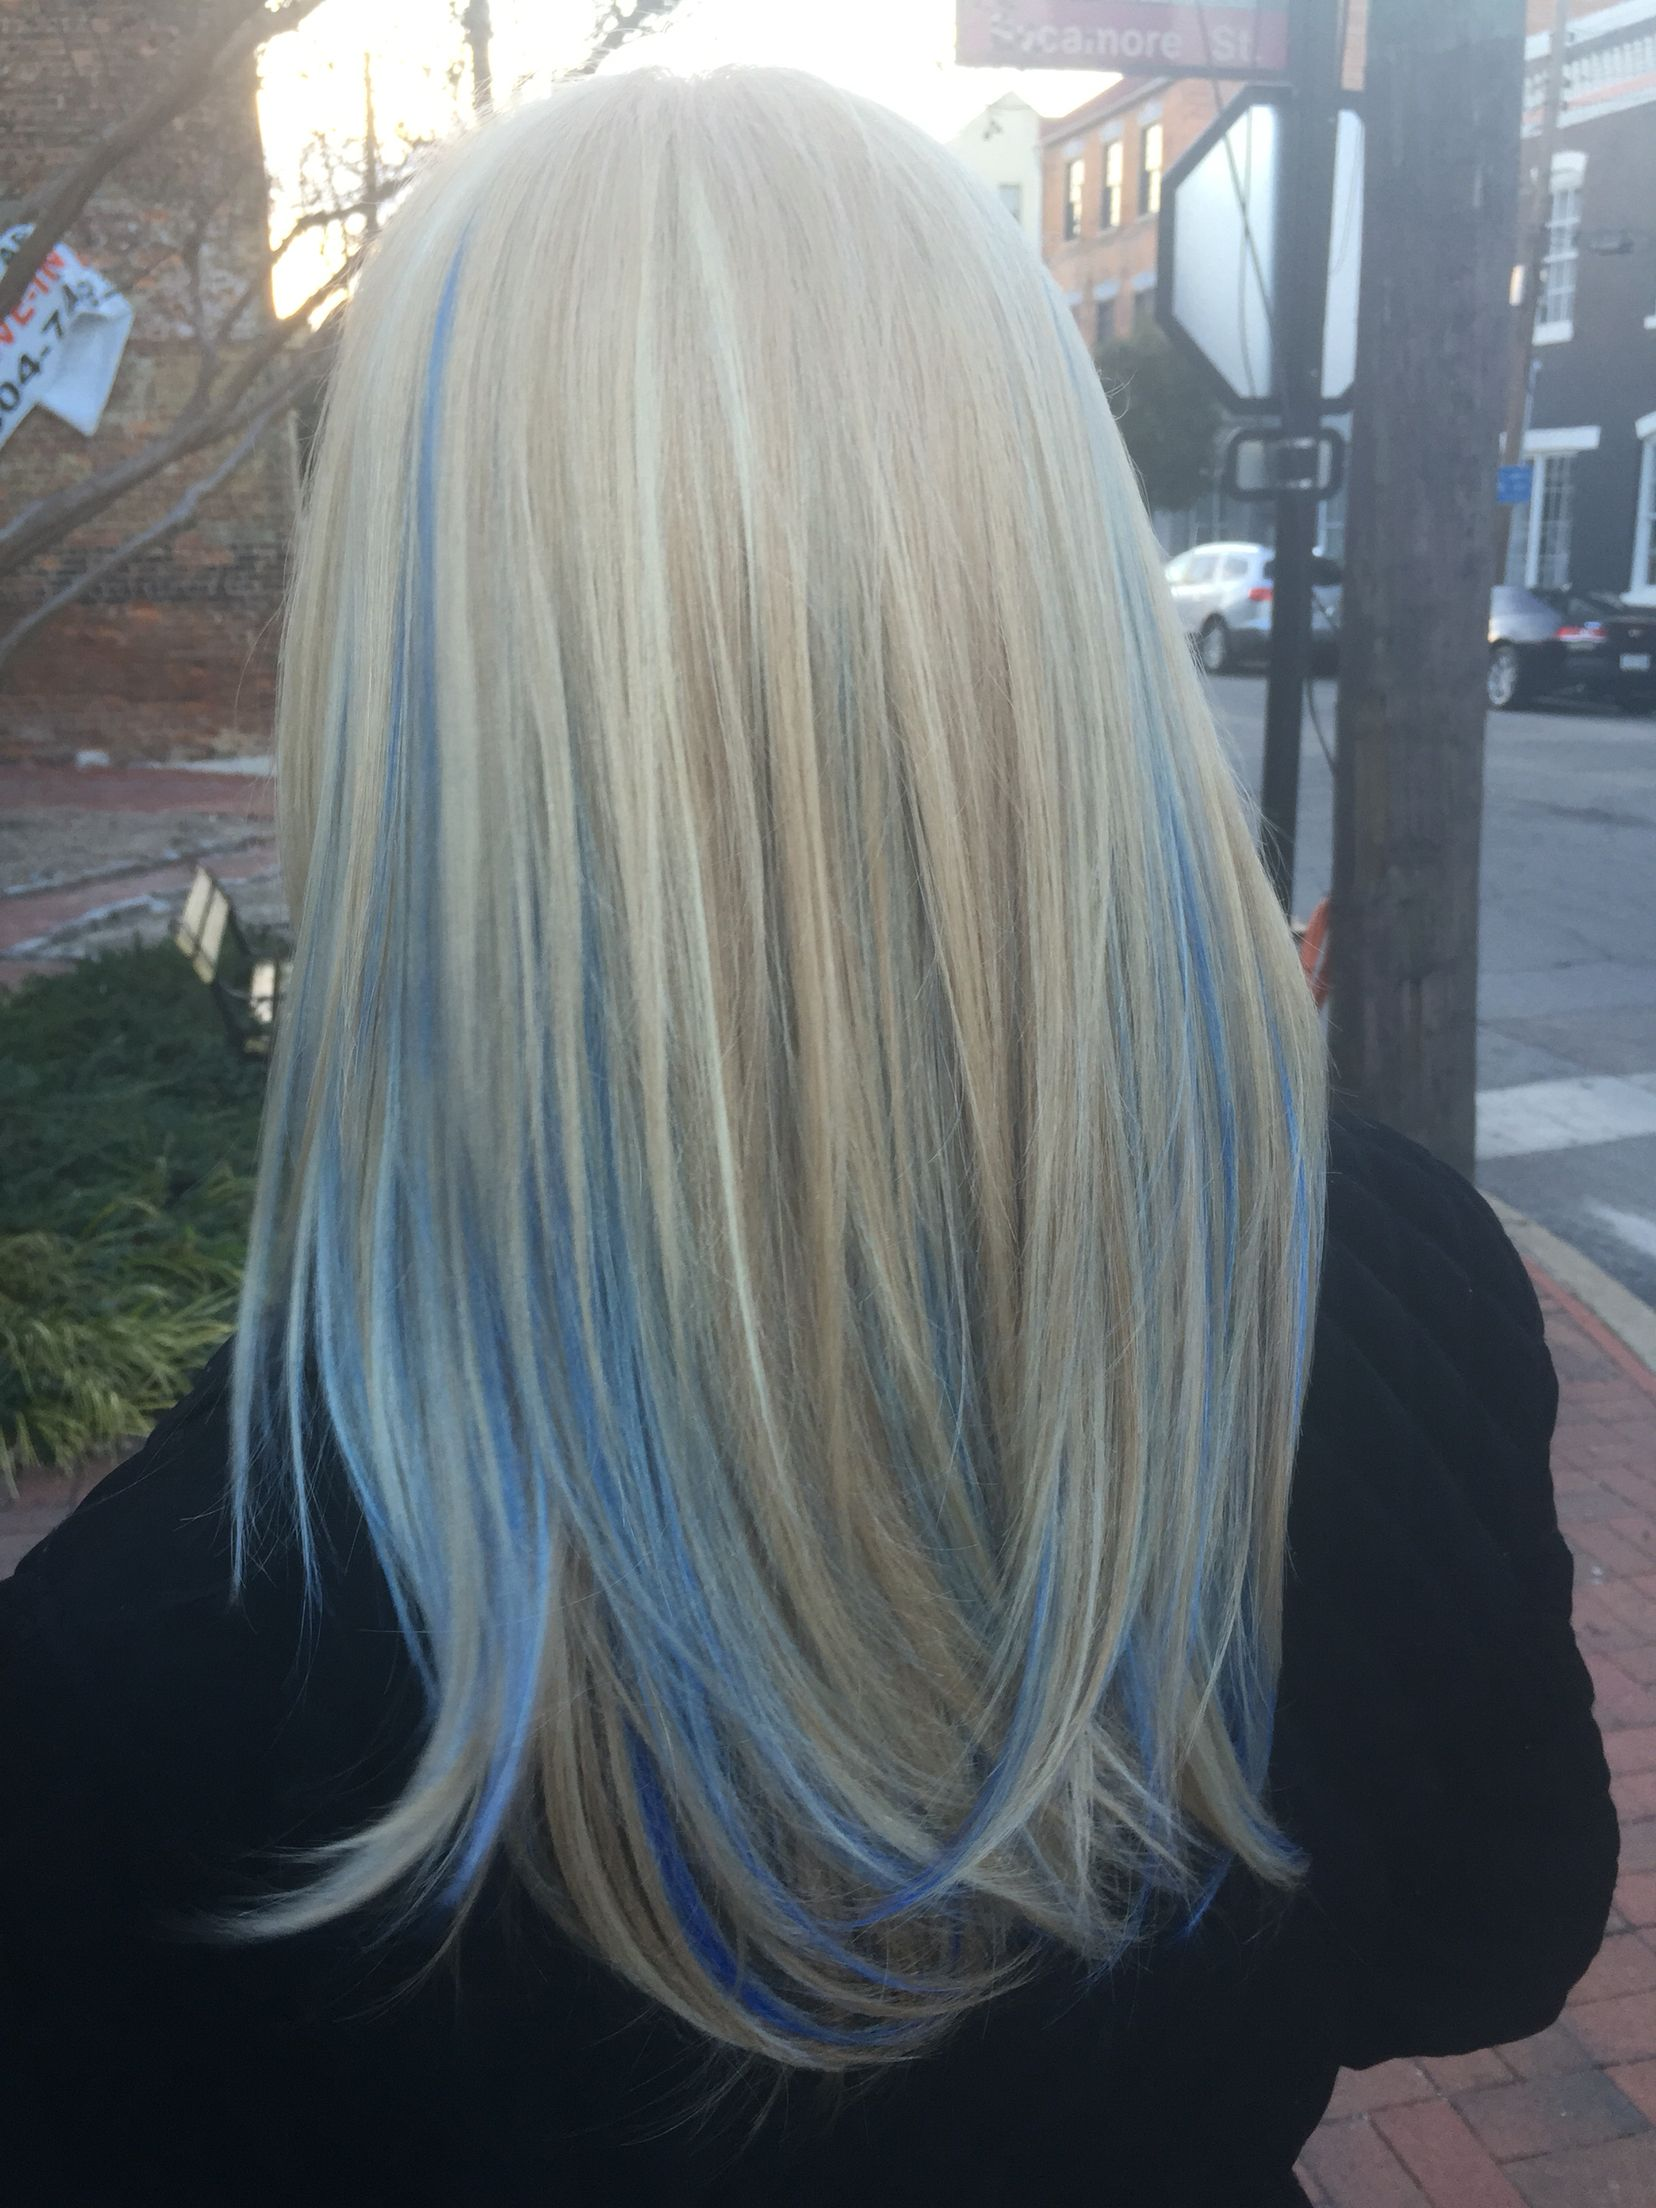 Pastel Blue Highlights By Me Blonde And Blue Hair Blue Hair Highlights Blonde Hair With Blue Highlights